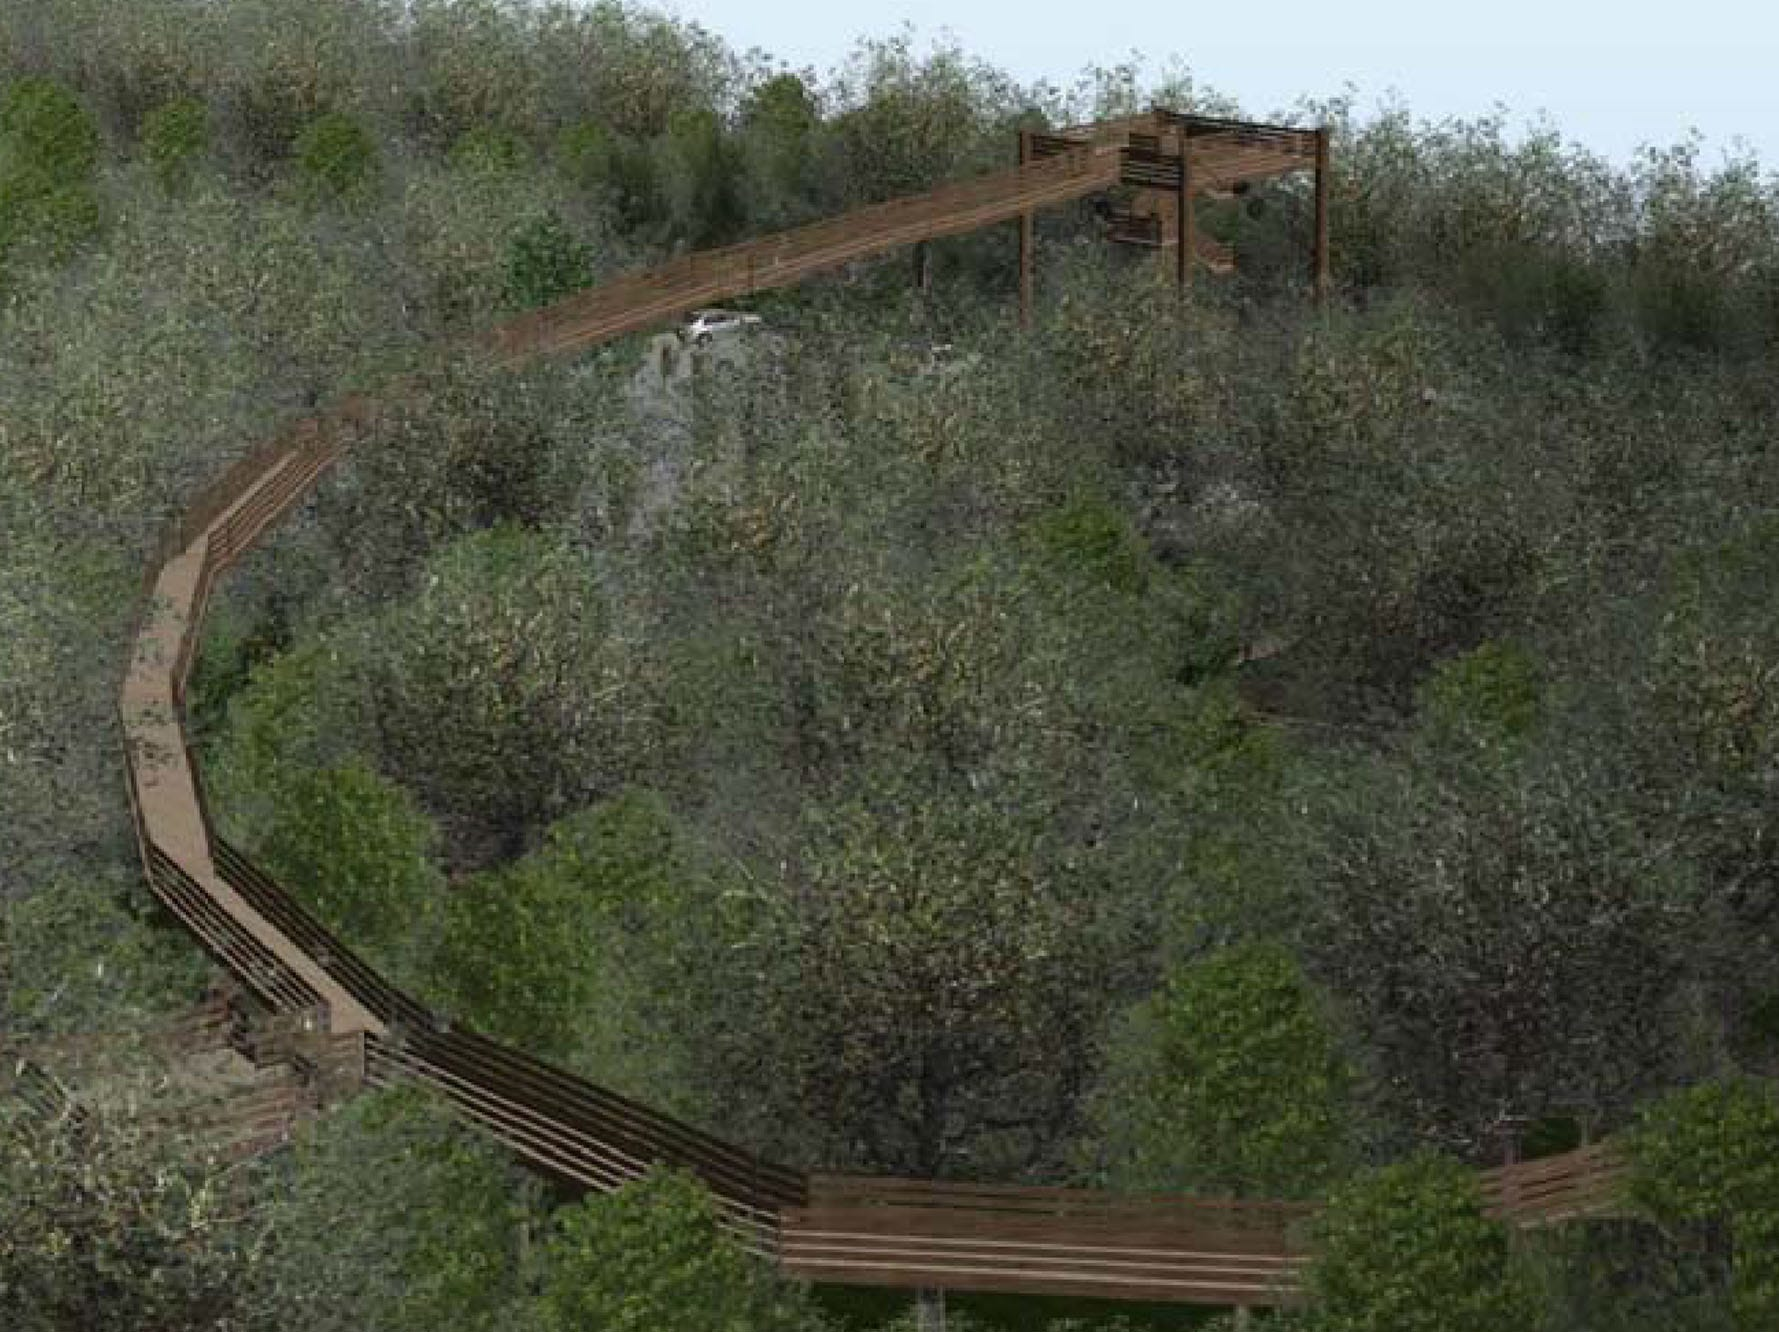 Fully accessible observation tower with ramp planned  for Peninsula State Park in first-of-its-kind project